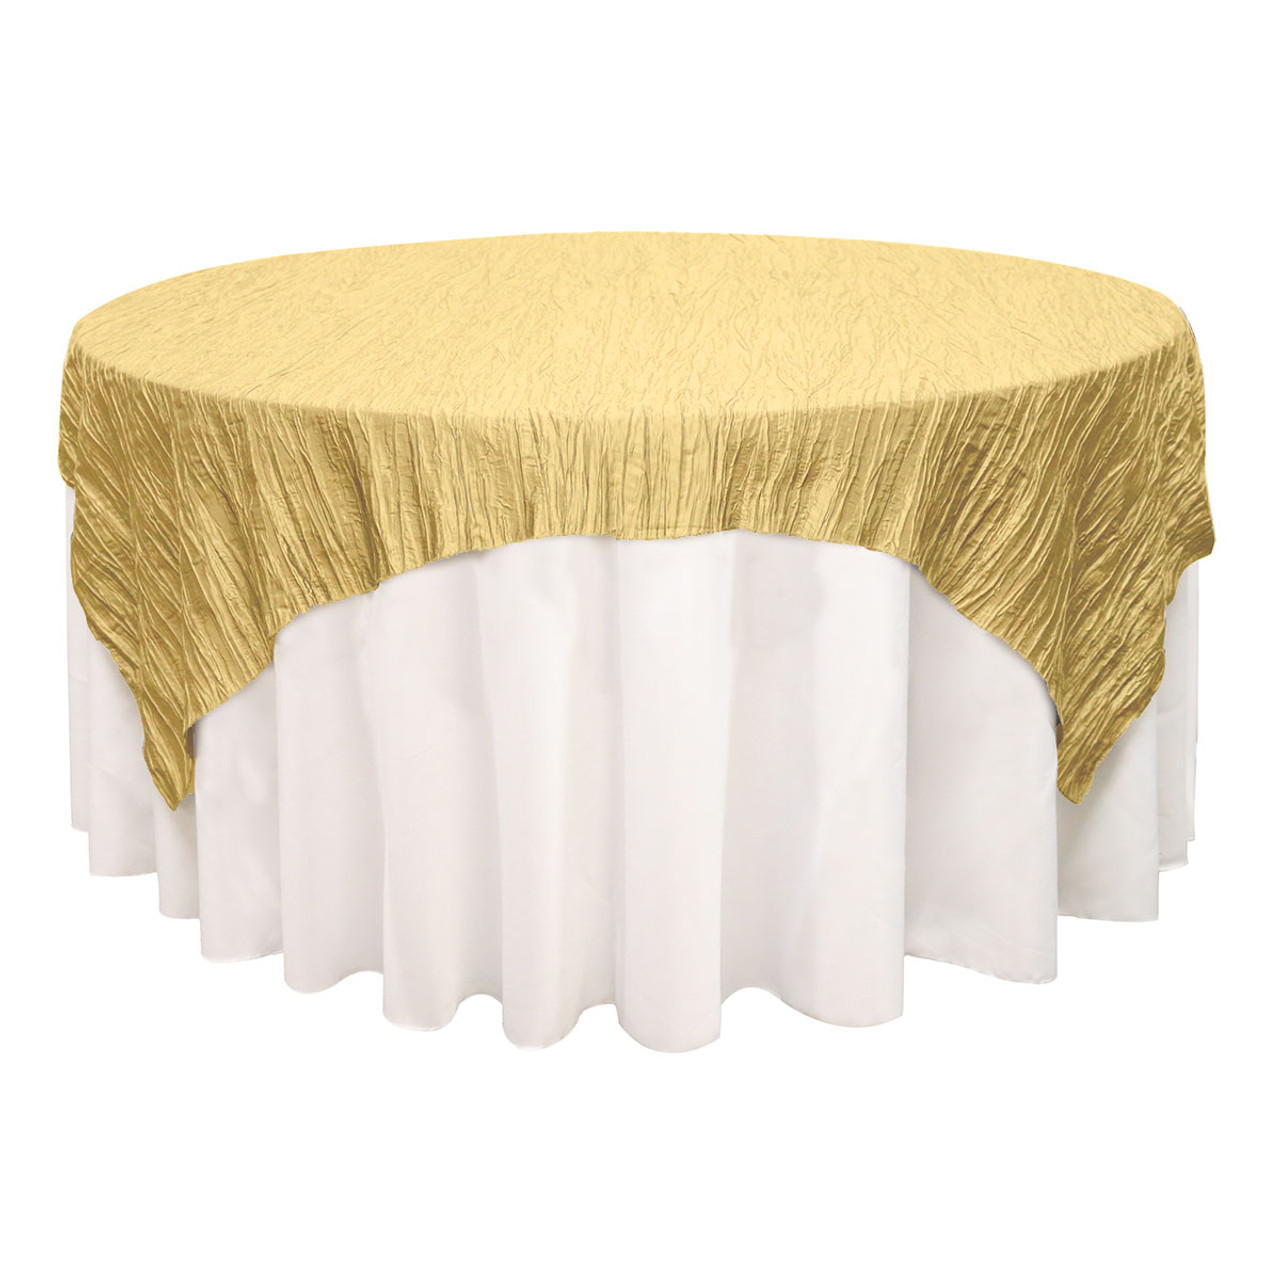 72 Inch Square Crinkle Taffeta Table Overlay Gold Your Chair Covers Inc